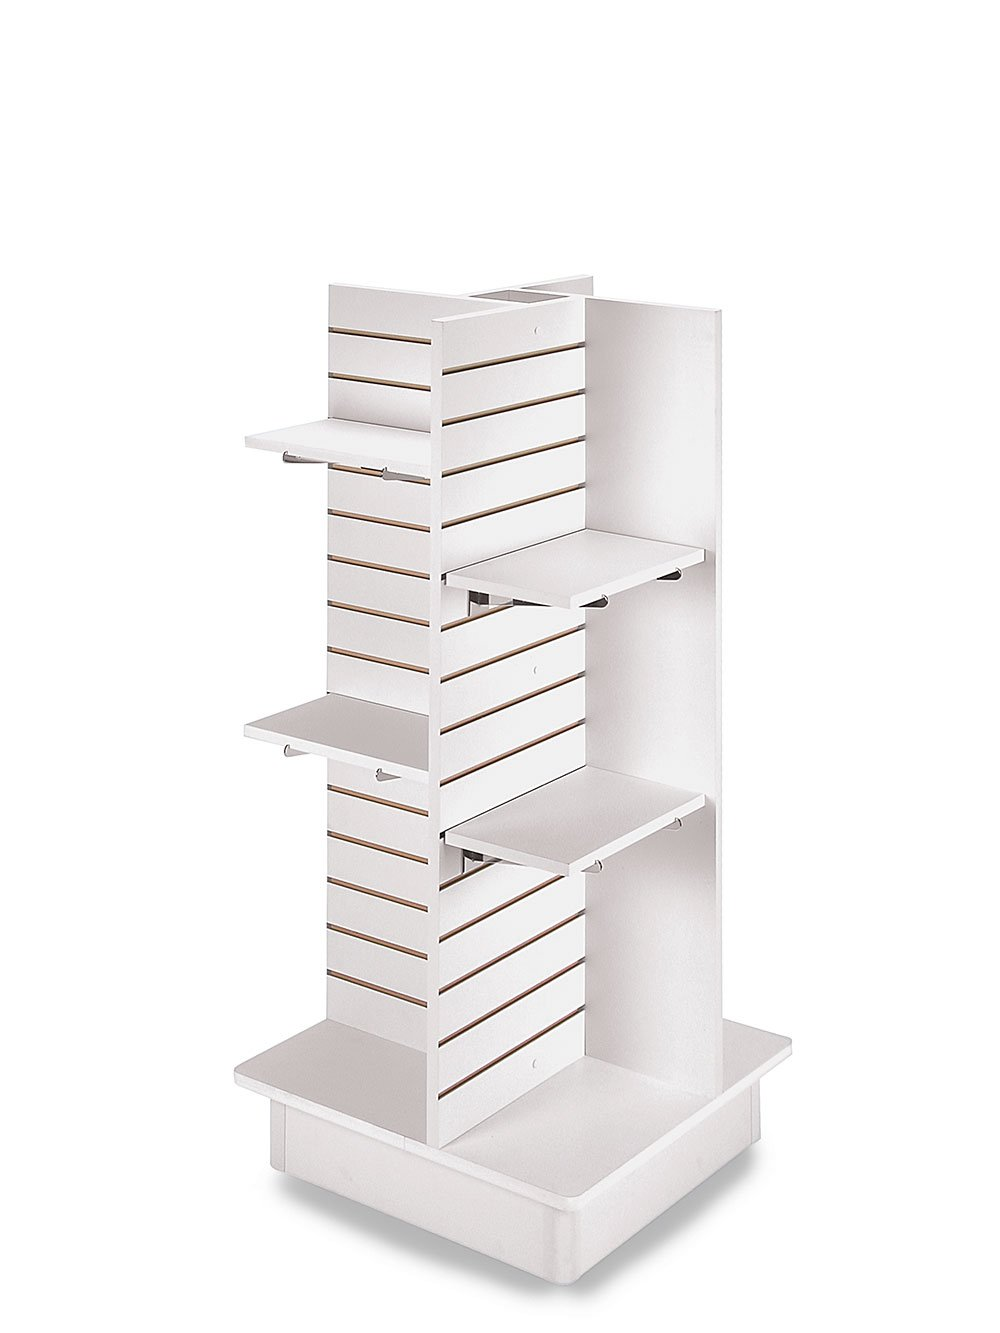 4-Panel White Slatwall Tower with Casters and Shelves (23''L x 23''W x 54''H)